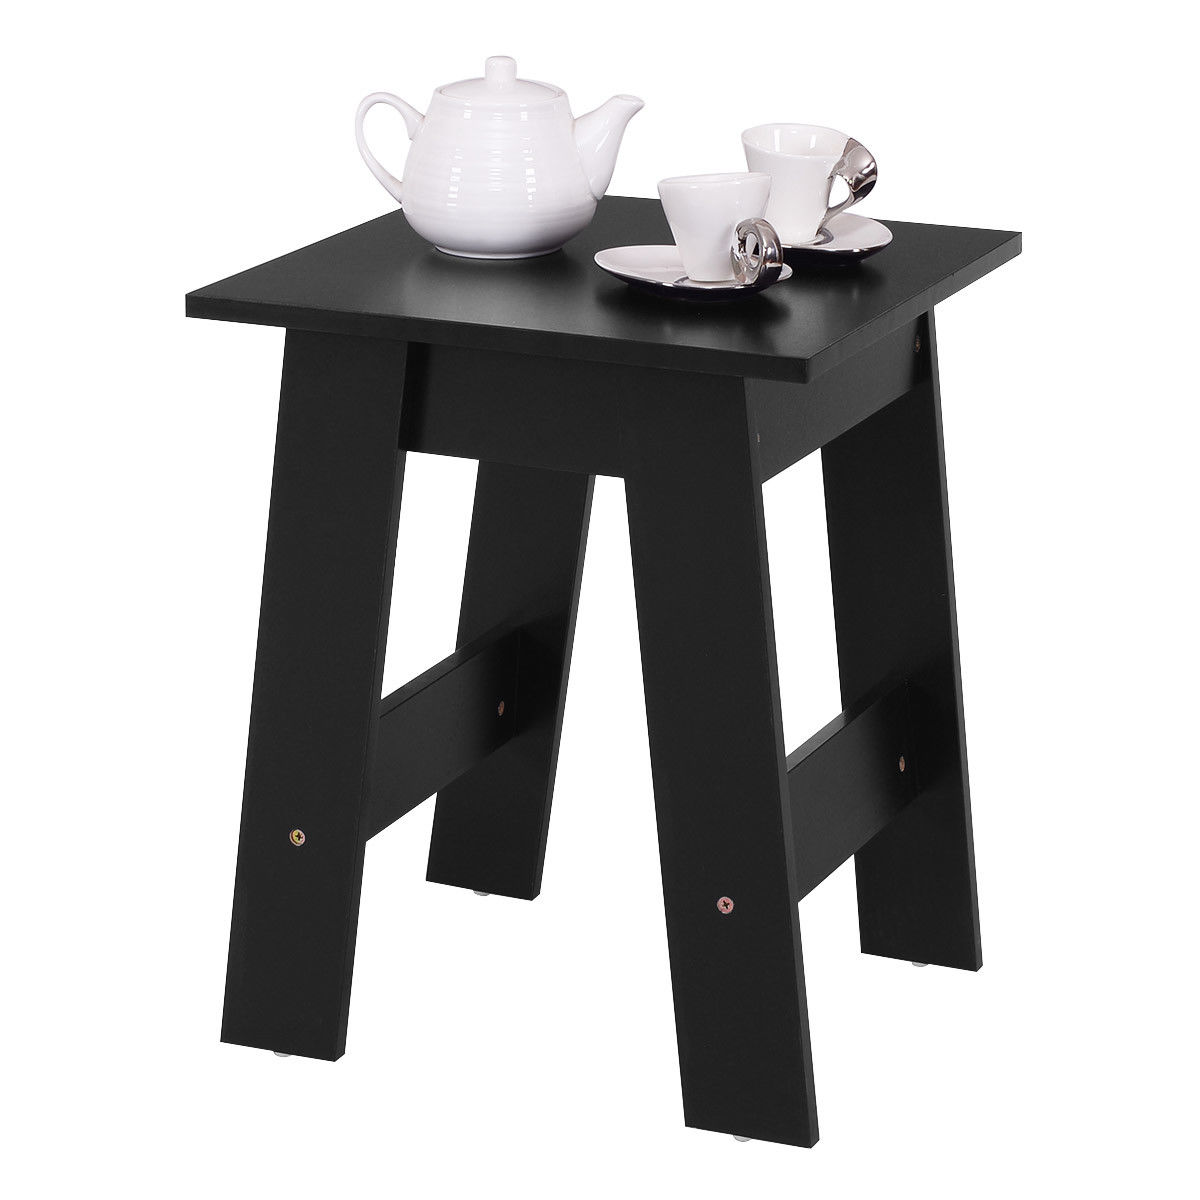 Costway Modern Wood End Table Accent Coffee Table Simple Design Side Desk Table Black by Costway